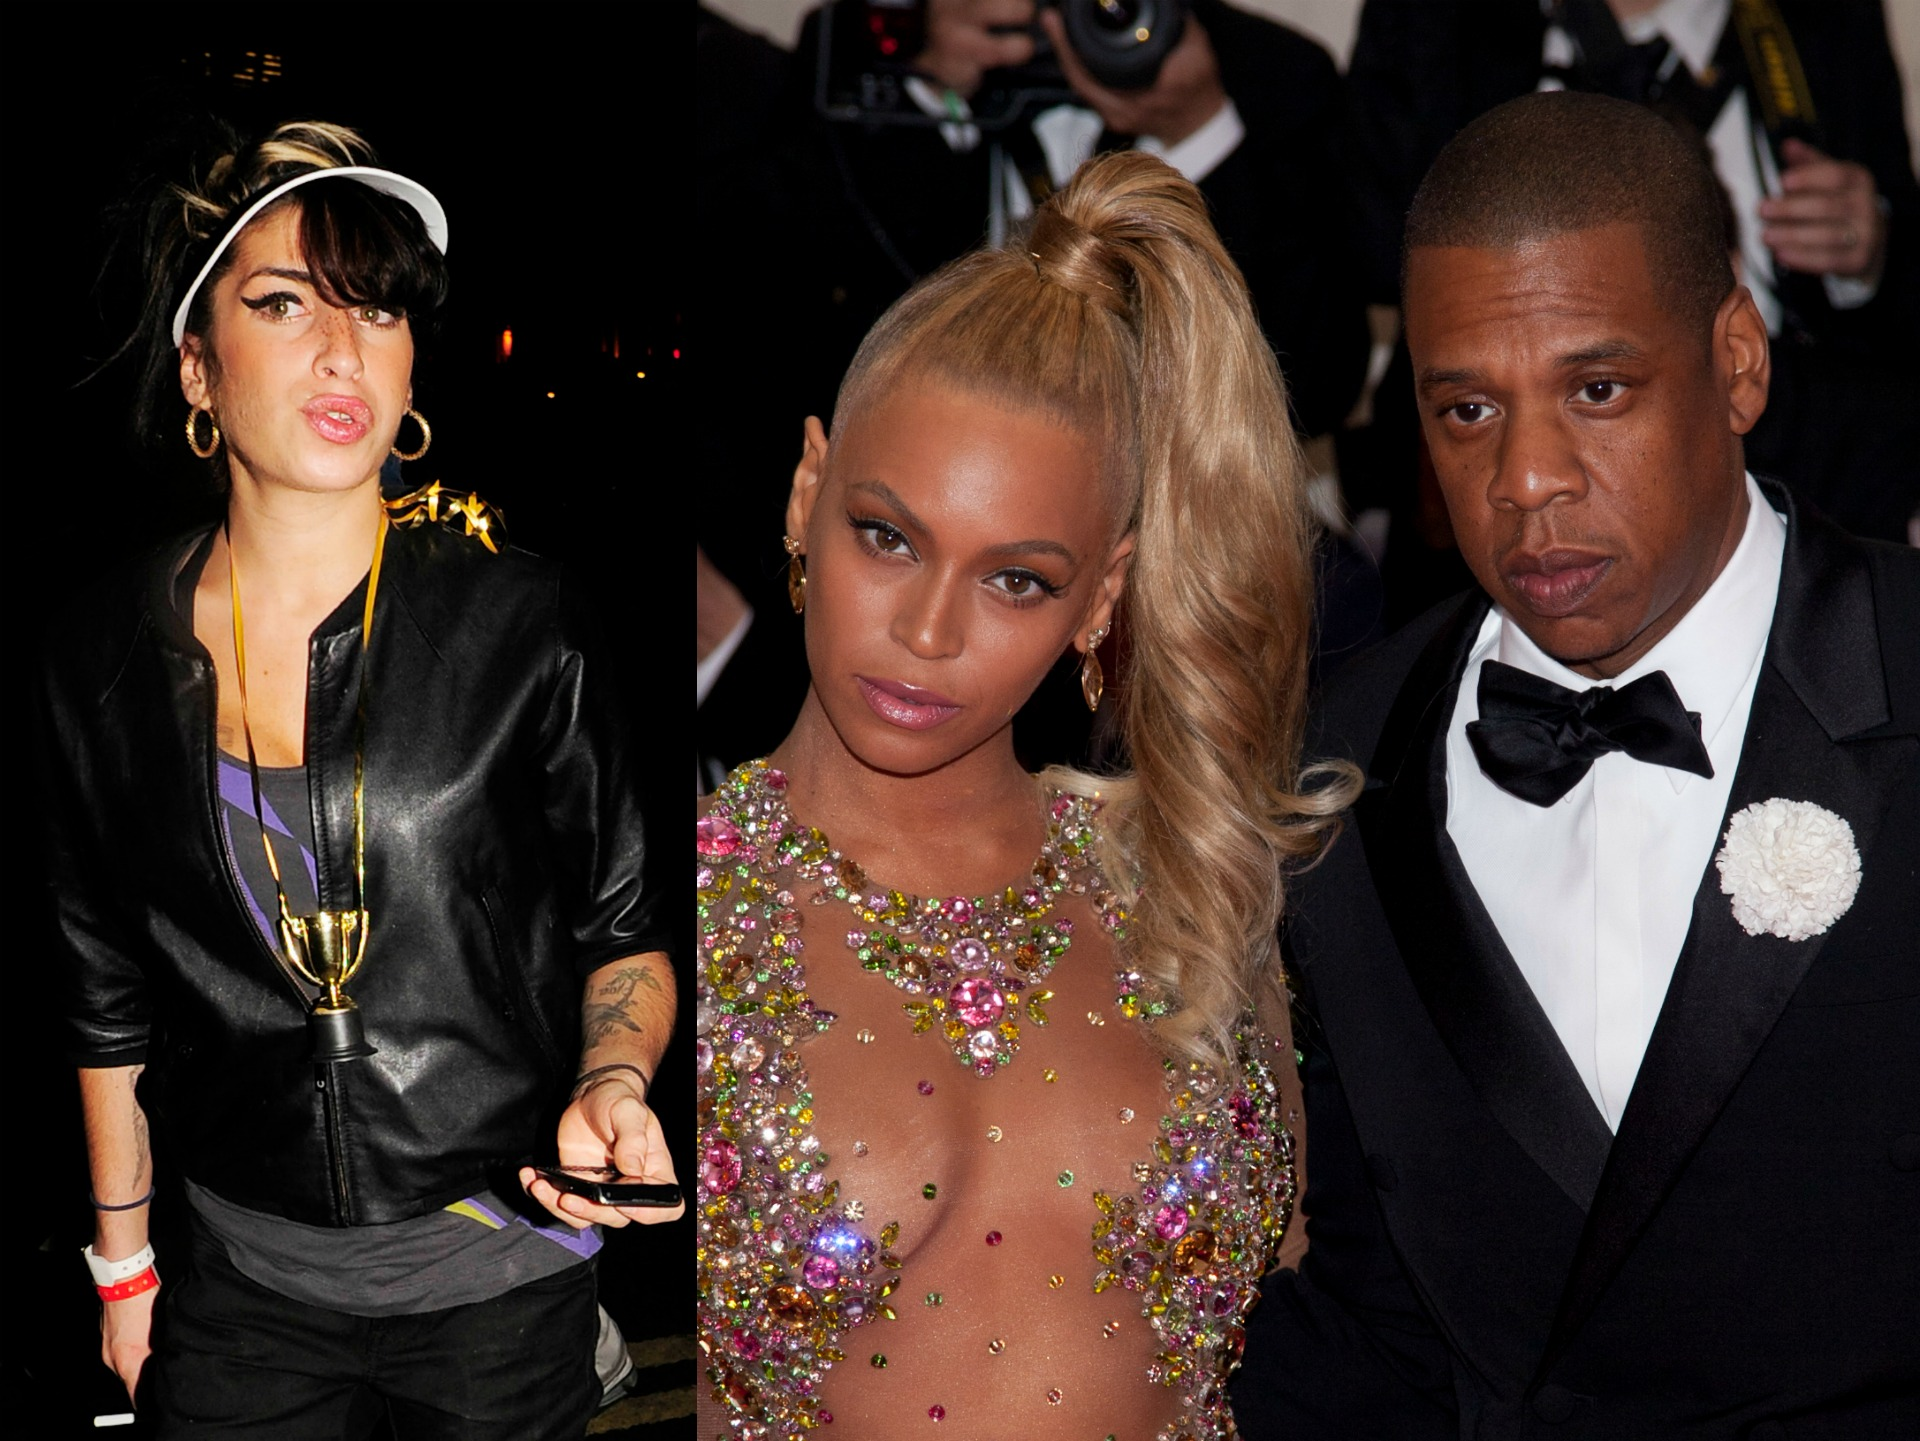 Jay-Z urged Amy WInehouse to stay with him before she died